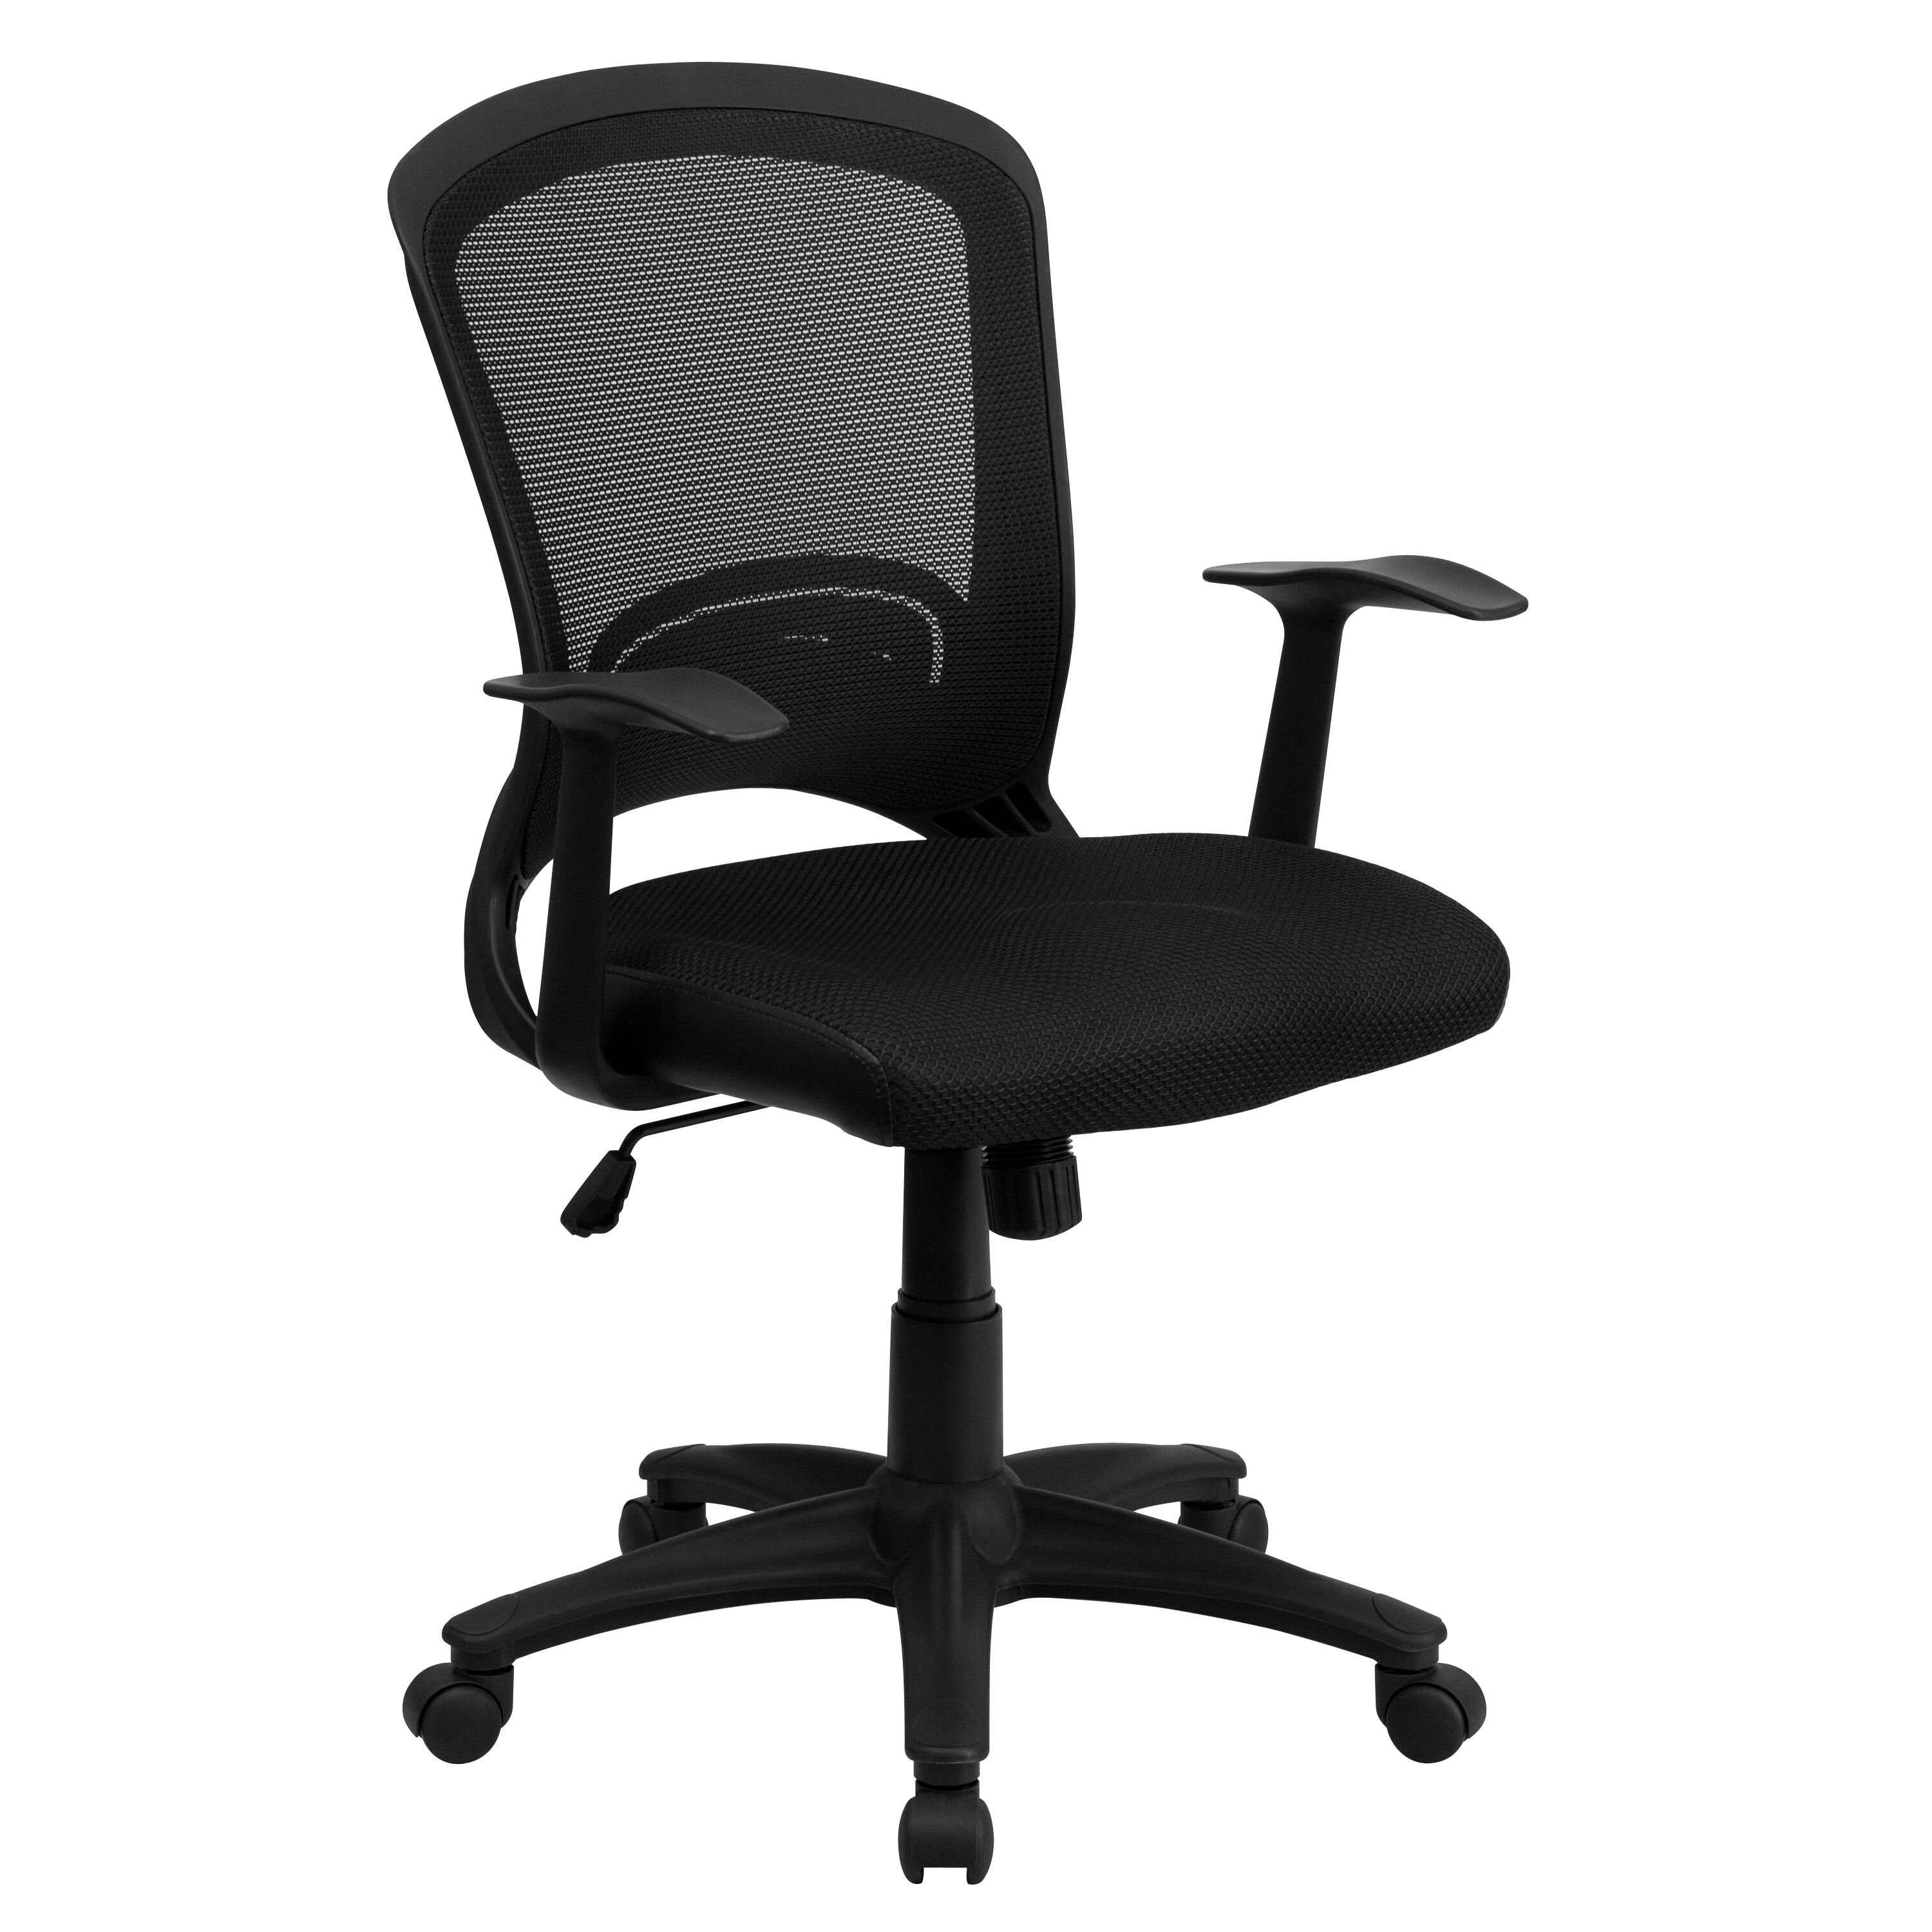 Task Chairs With Arms Mid Back Designer Black Mesh Swivel Task Office Chair With Arms